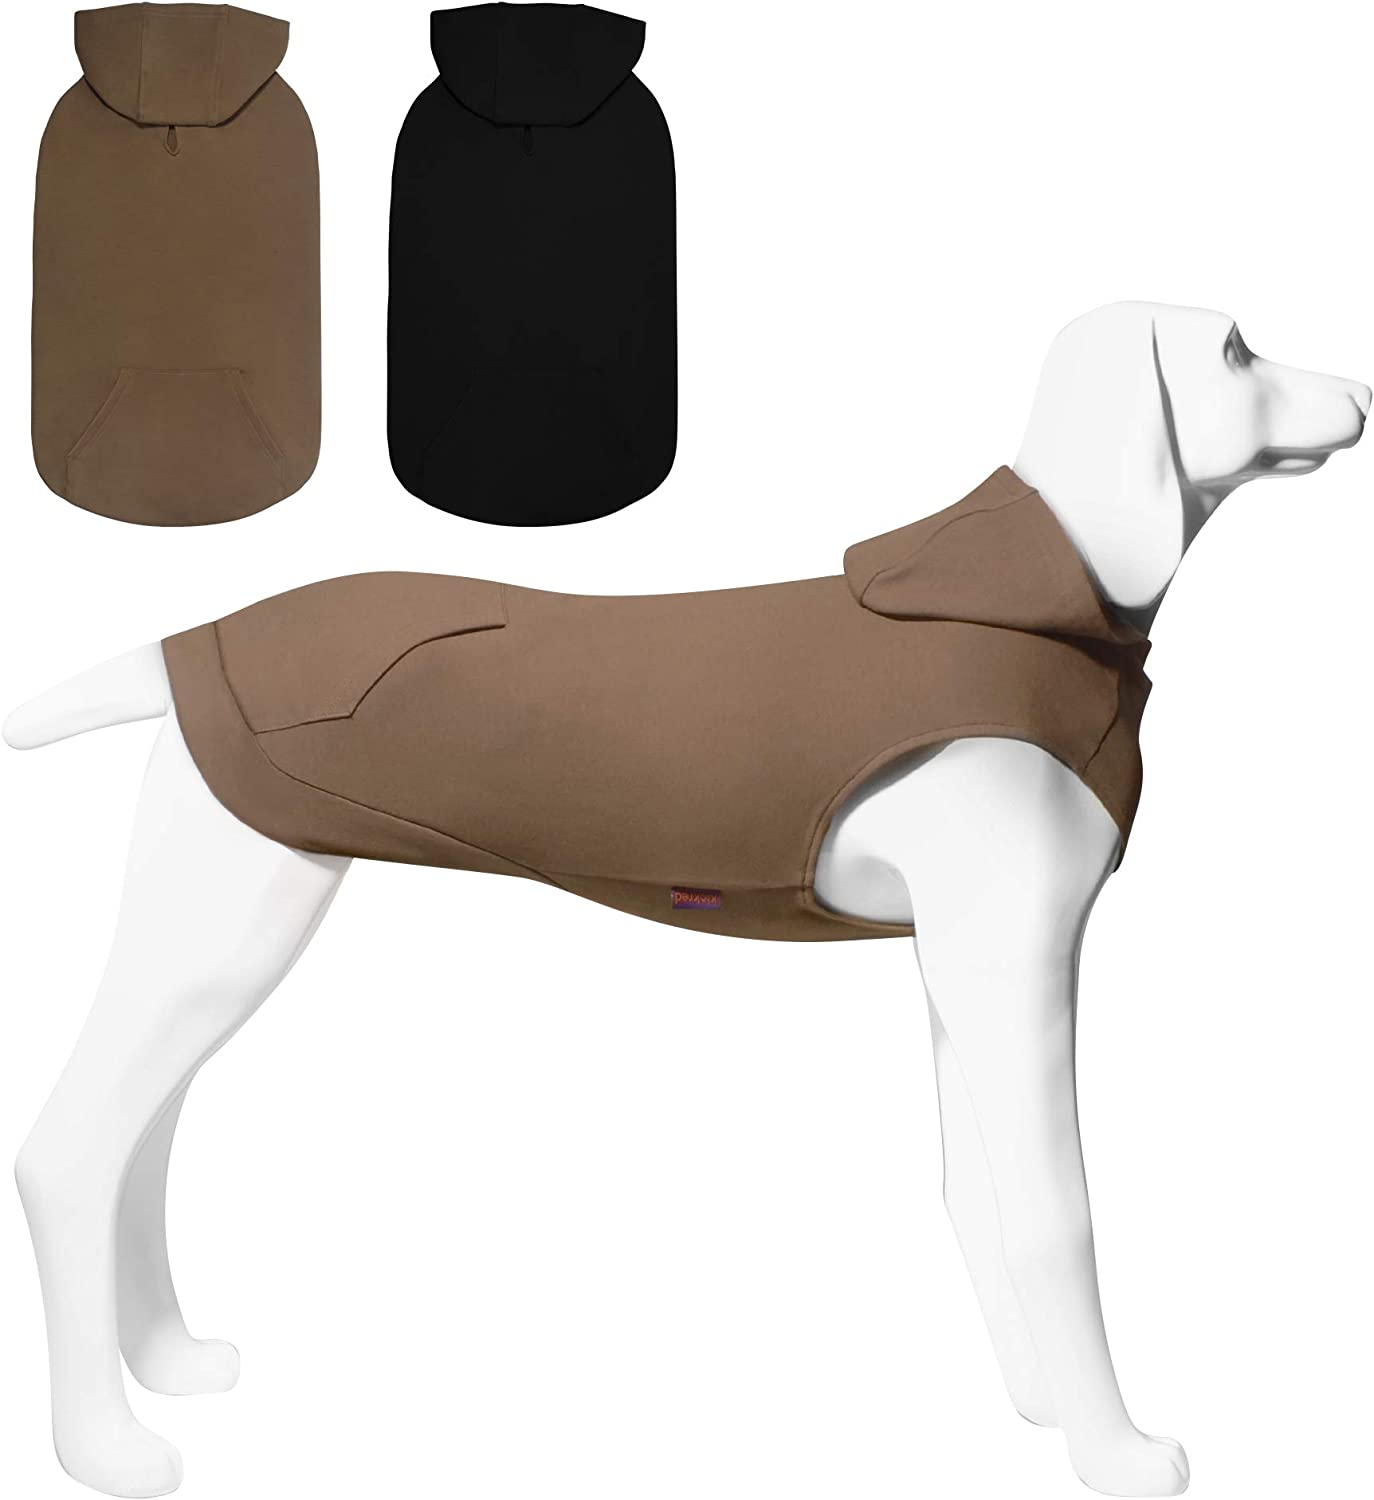 Kickred 2 Pieces Dog Hoodie Sweaters, Spring Dog Vest Sweatshirt with Hat & Pocket & Leash Hole, Basic Pet Clothes Hoodies for Small Medium Large Dogs